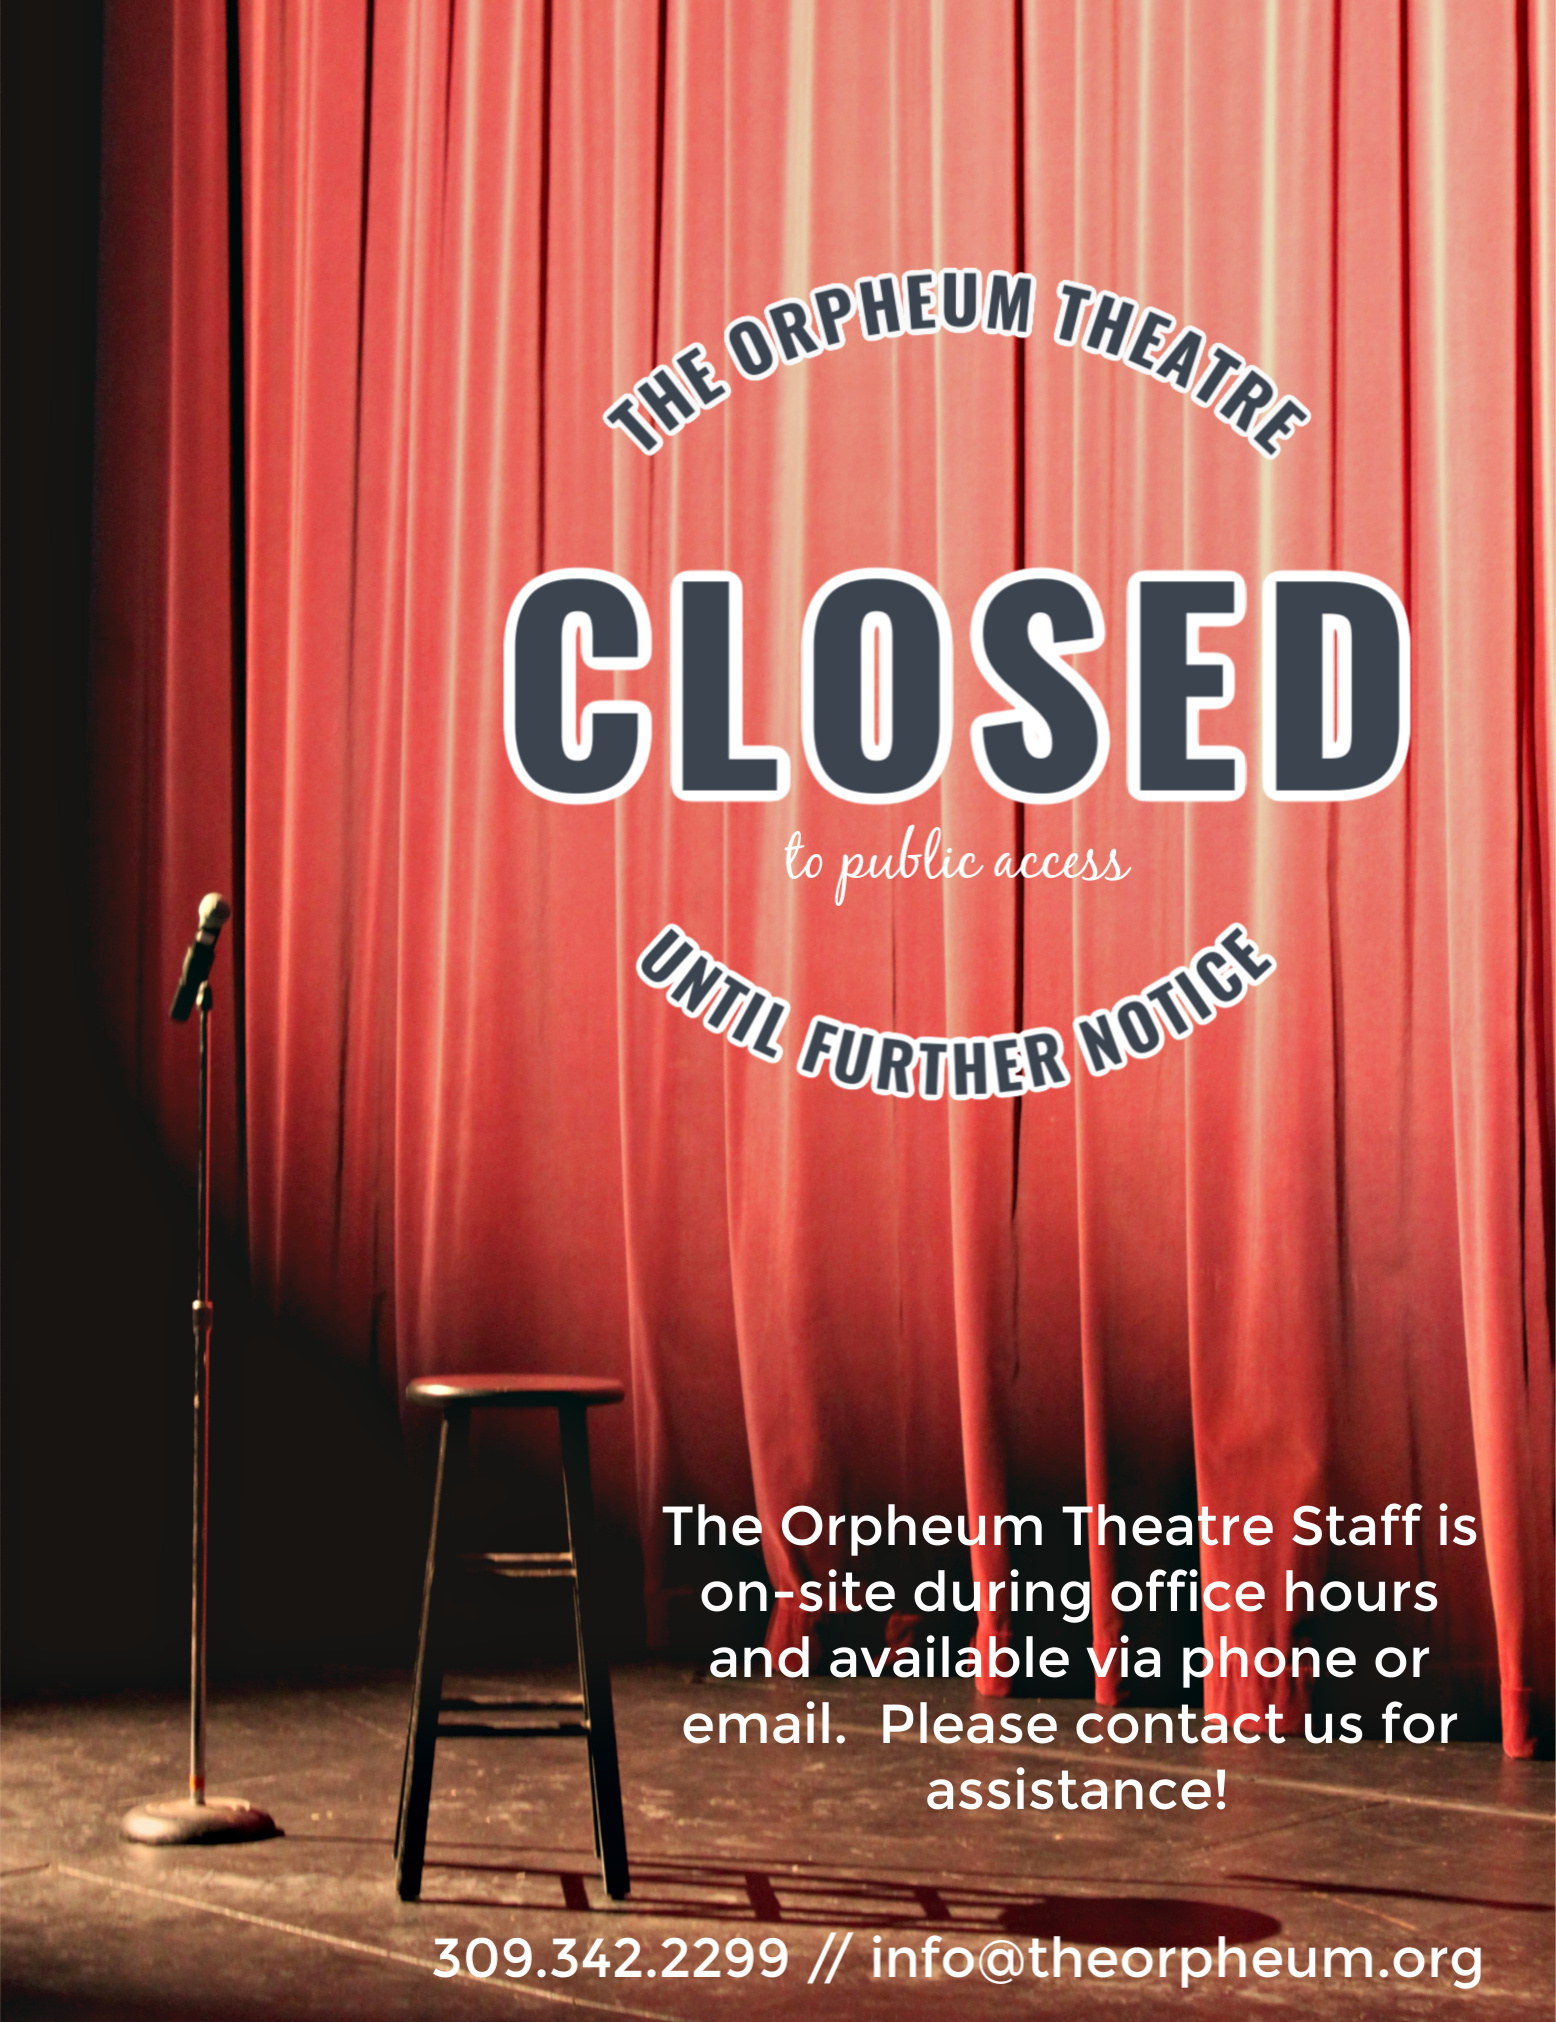 The Orpheum Theatre is closed to public access until further notice.